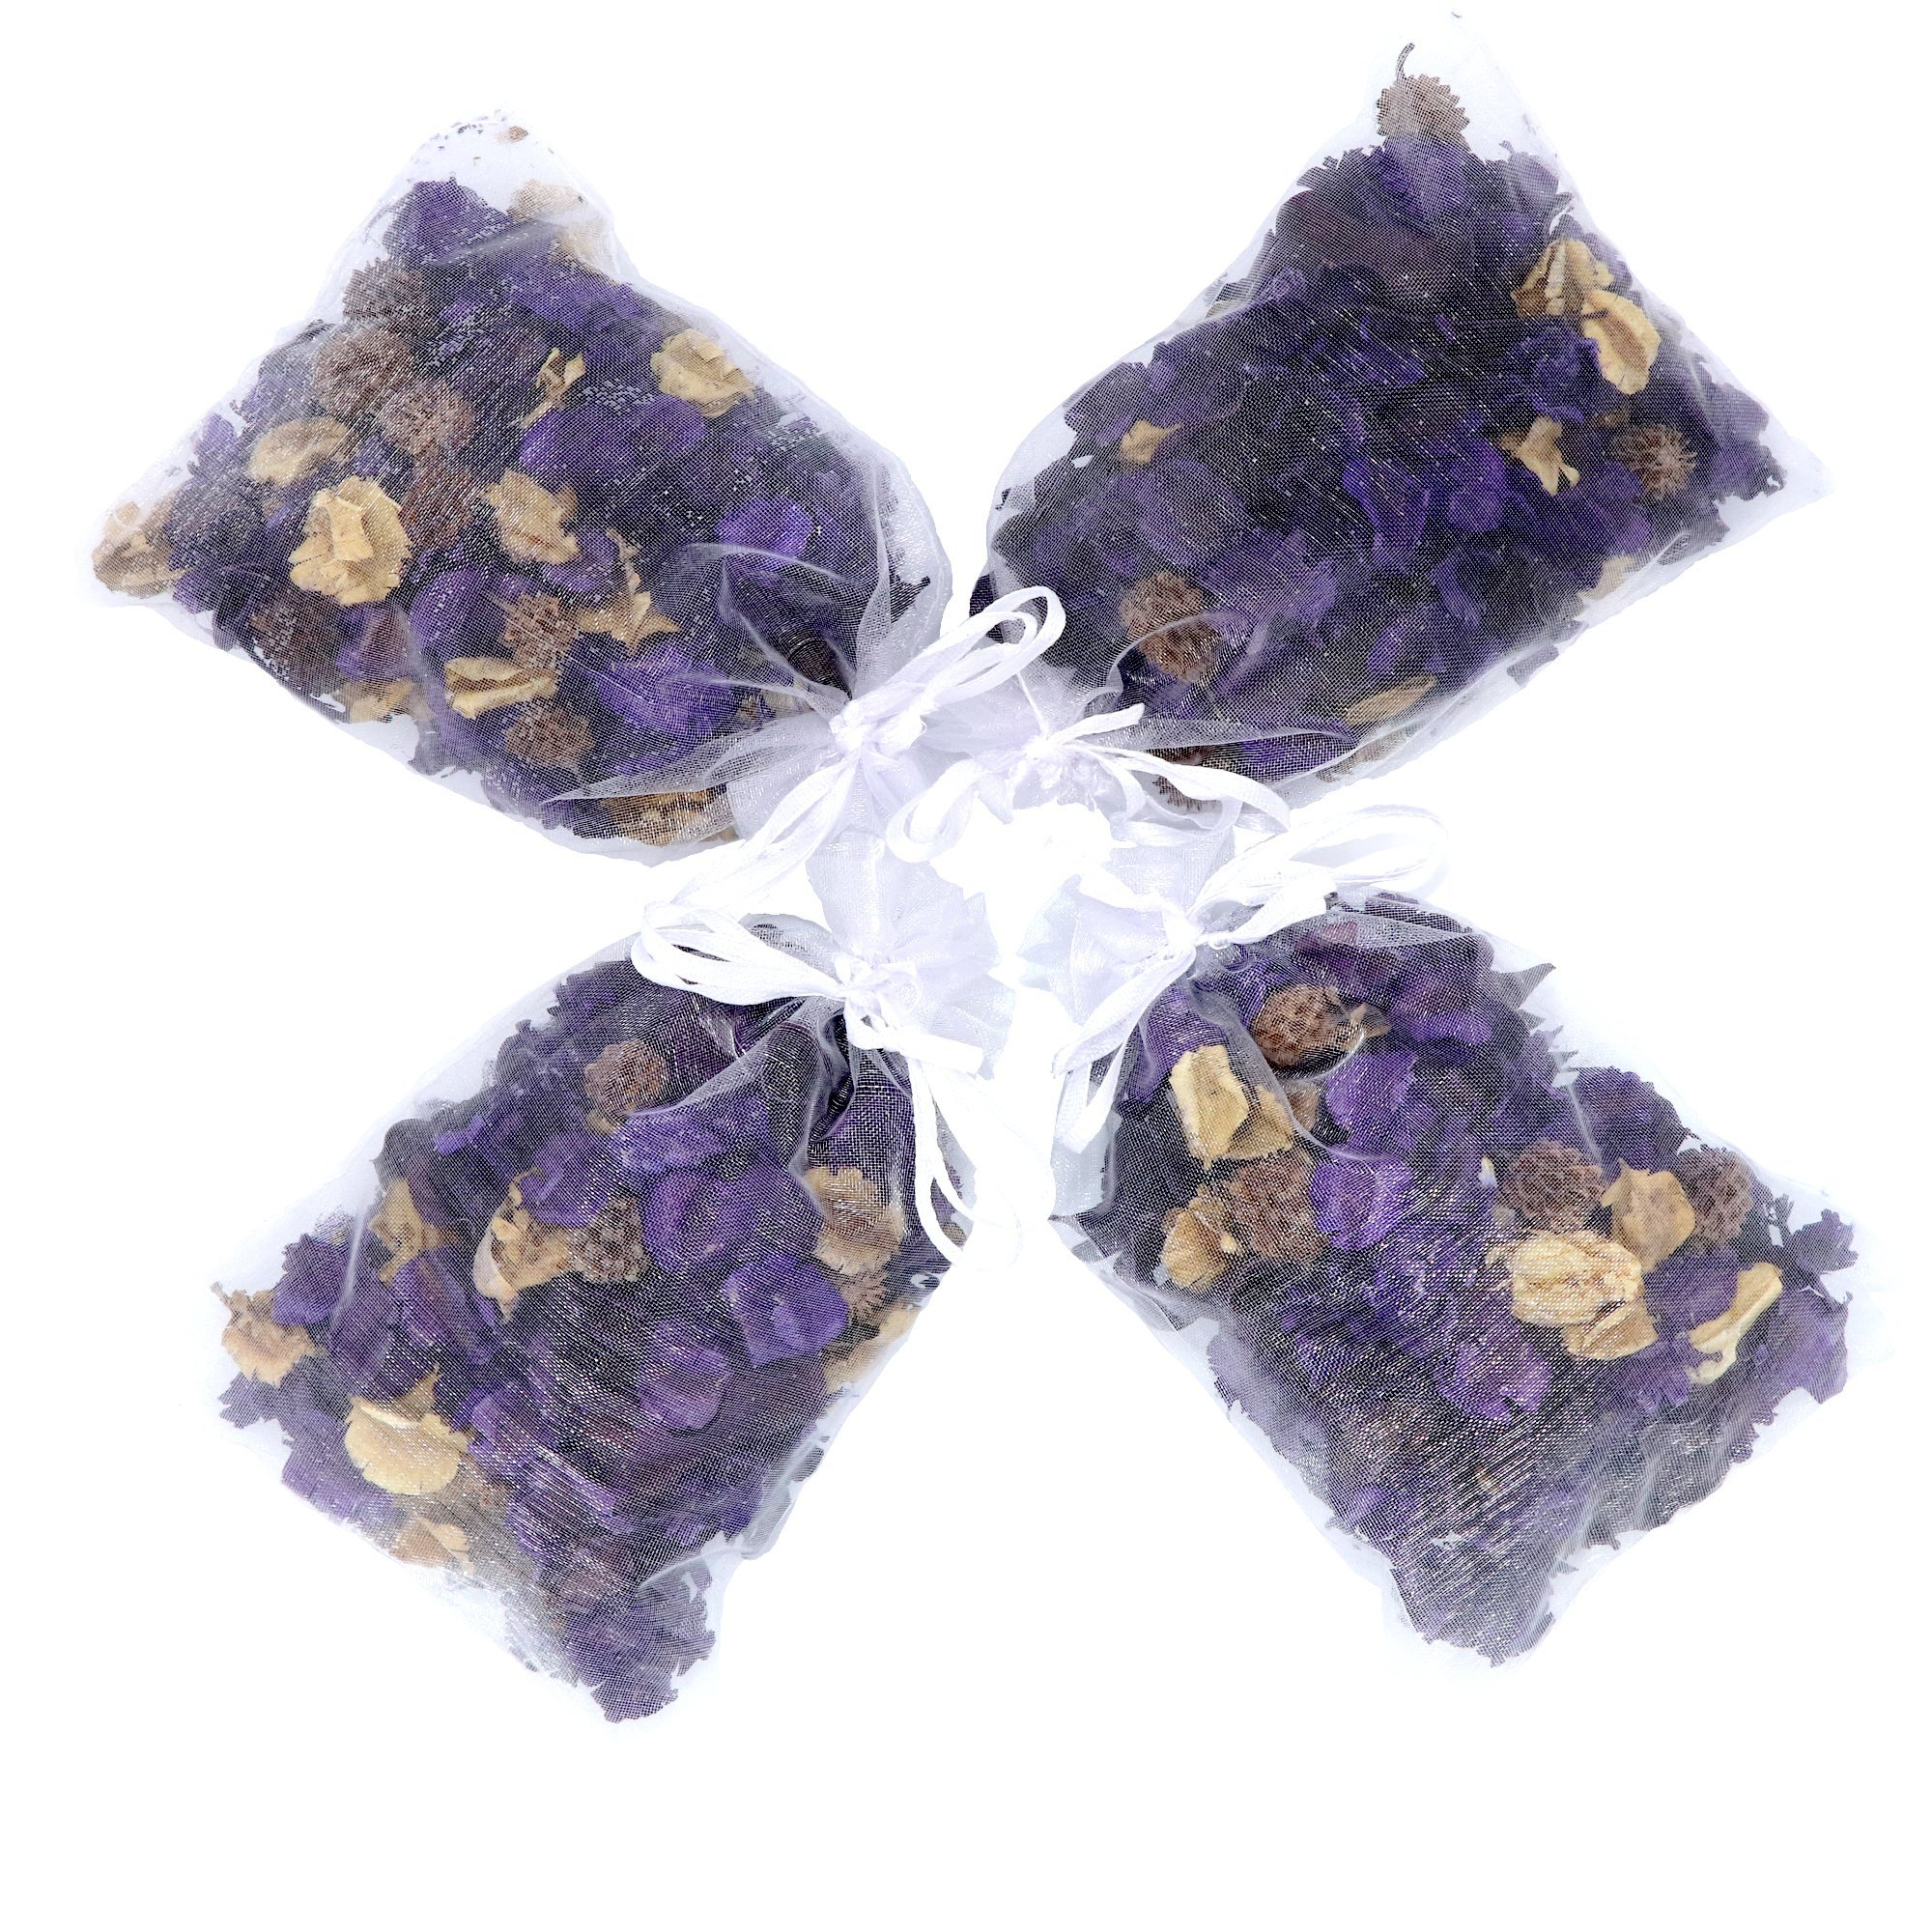 The Ambient Collection Lavender Scent Potpourri 20 g organza bag x 4 by The Ambient Collection